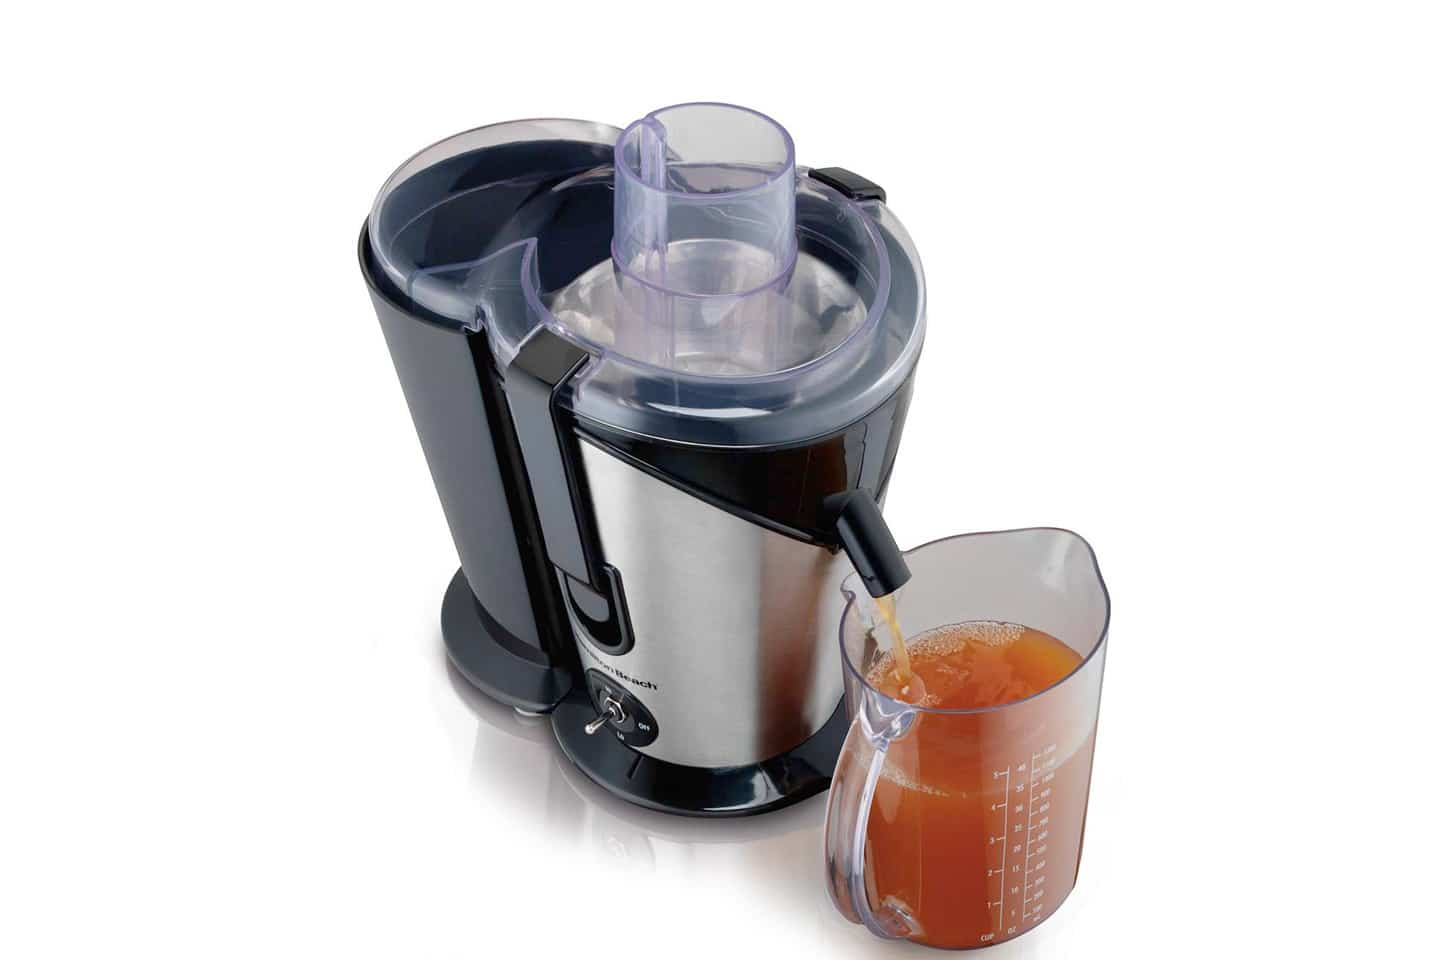 Hamilton Beach Big Mouth Plus 67750 Juice Extractor Review   Juicing Journal